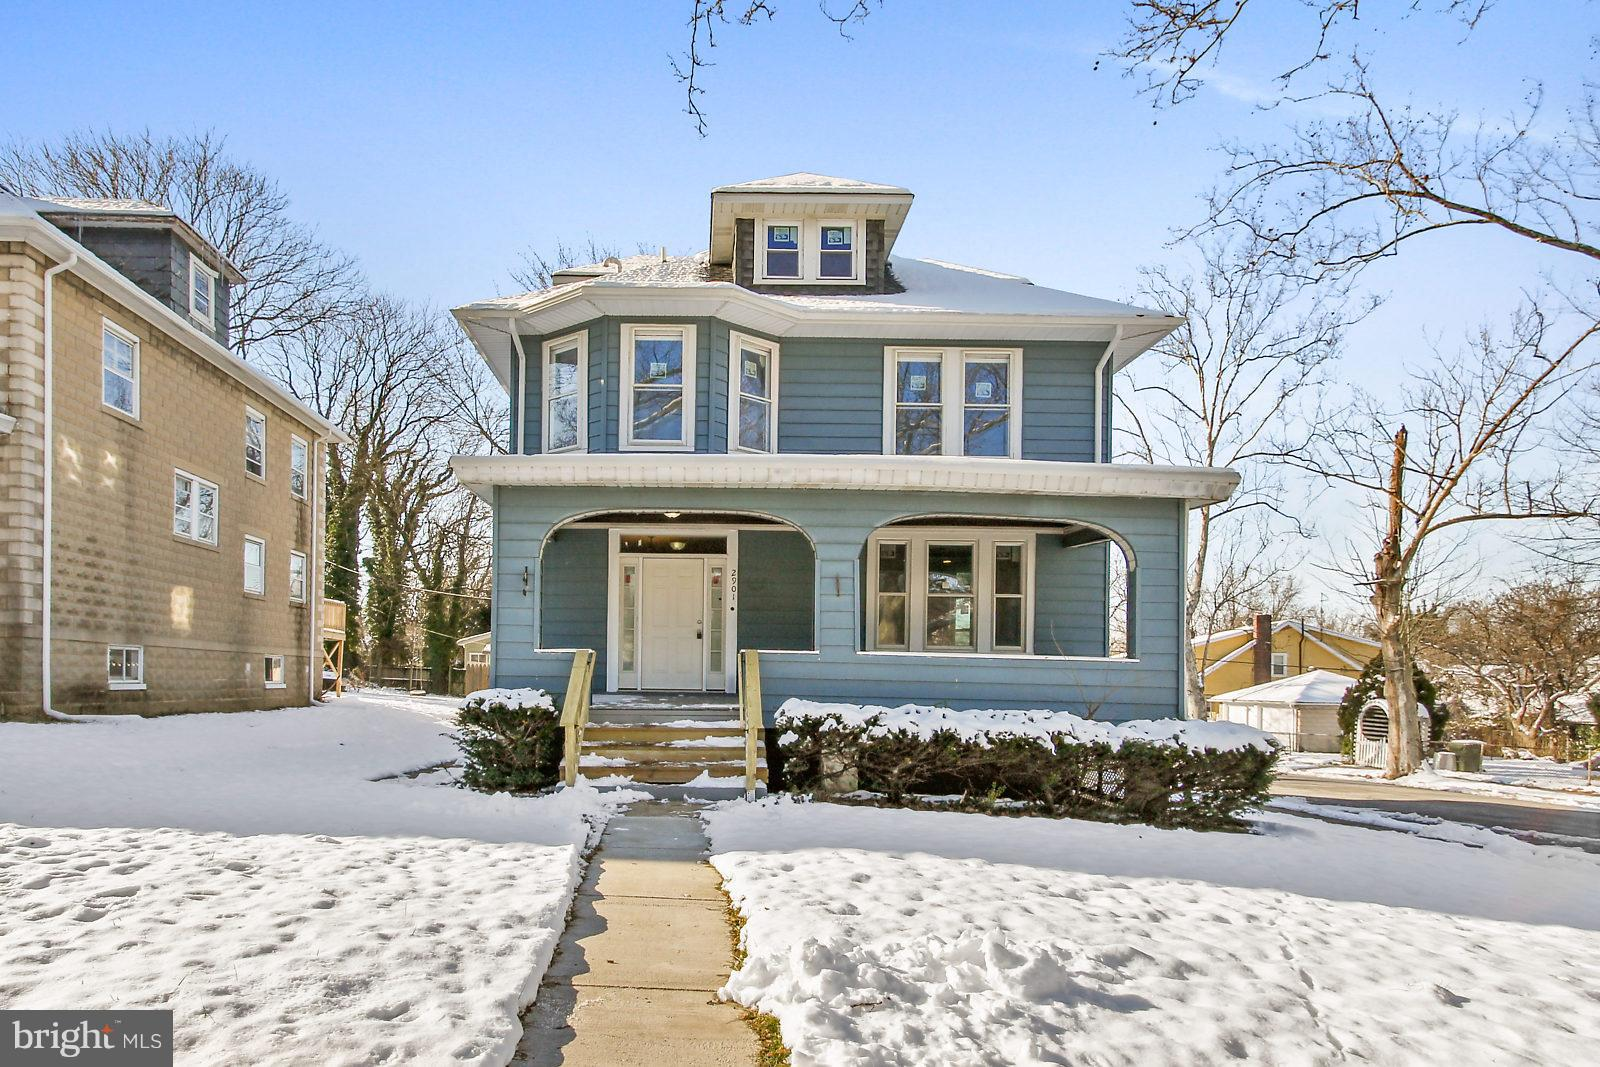 2901 SOUTHERN AVENUE, BALTIMORE, MD 21214